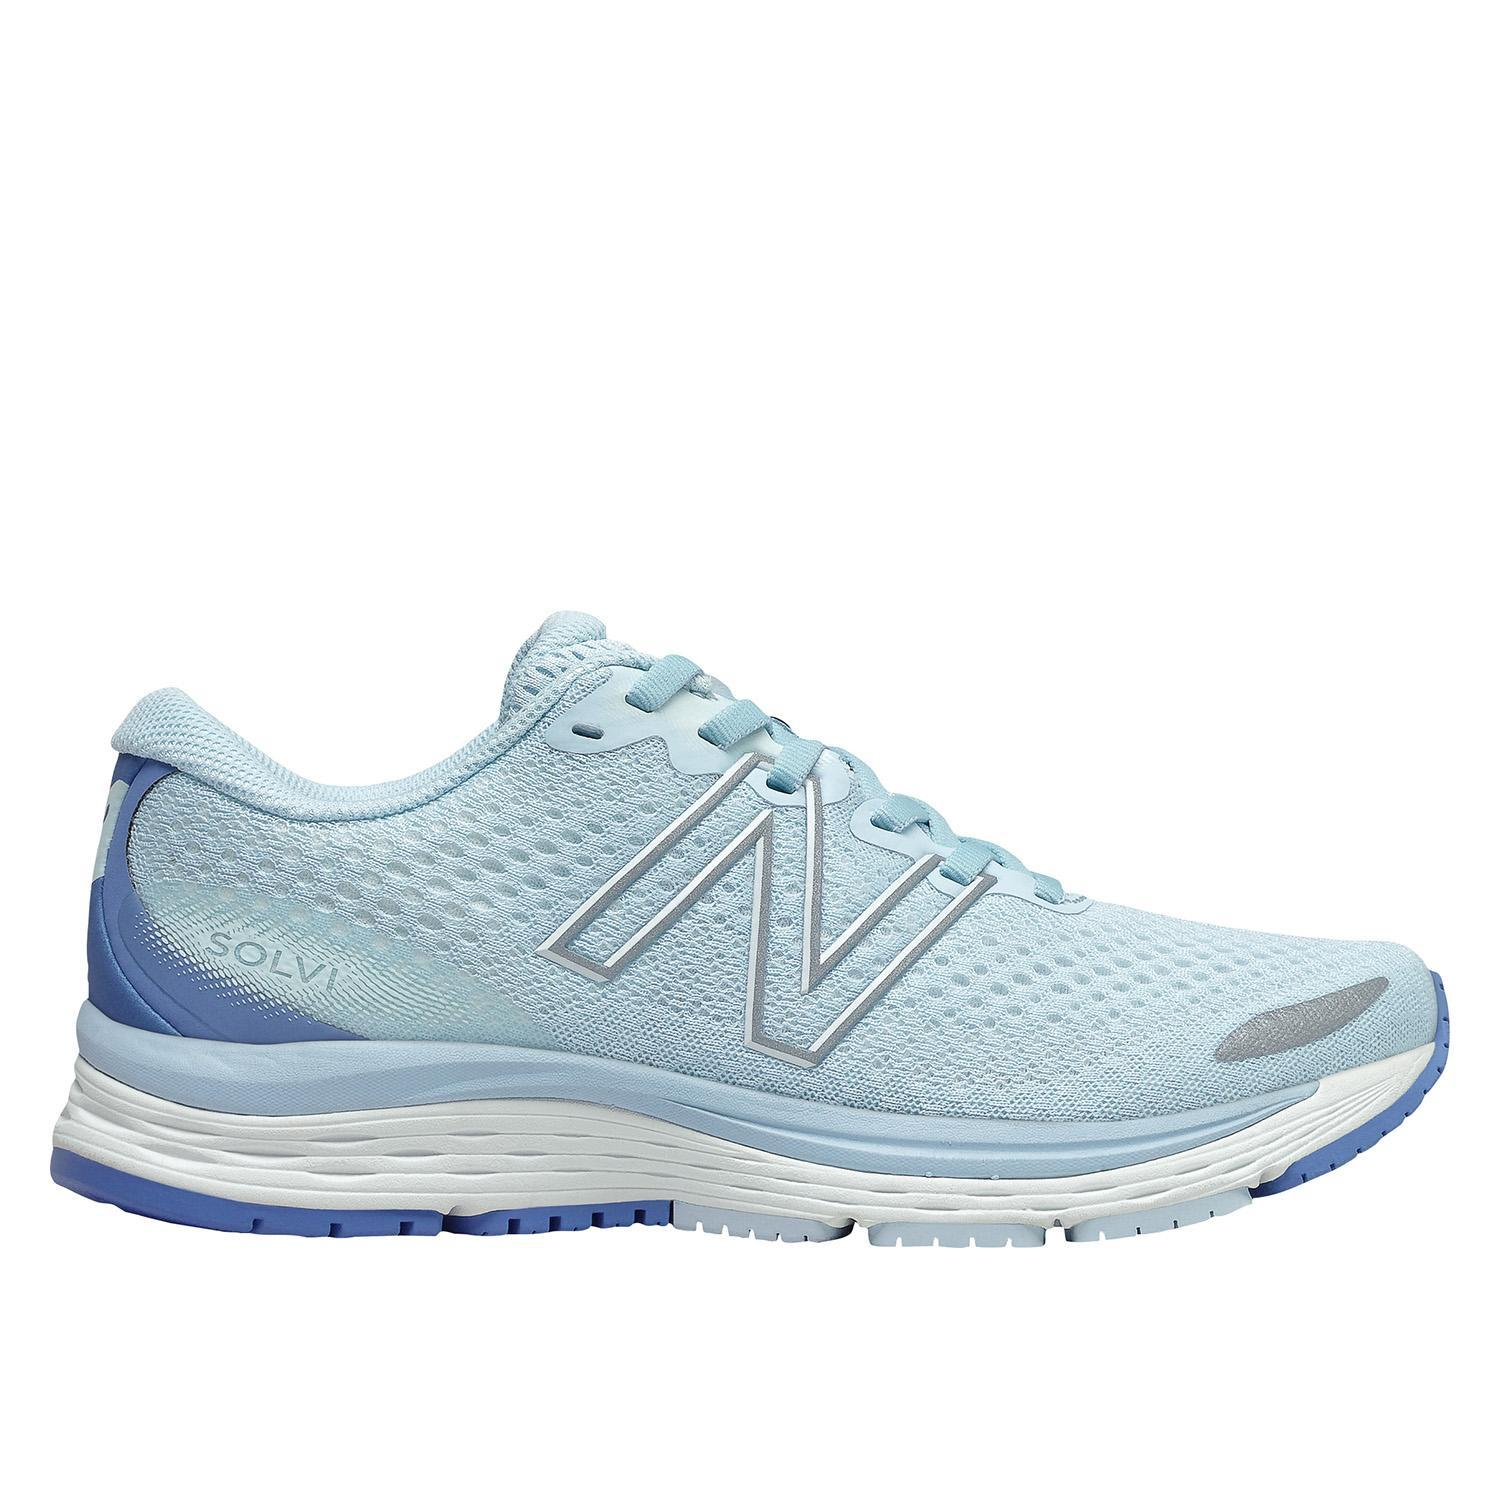 New Balance Women's Solvi v3 - UV Glo/Stellar Blue SP-Footwear-Womens New Balance